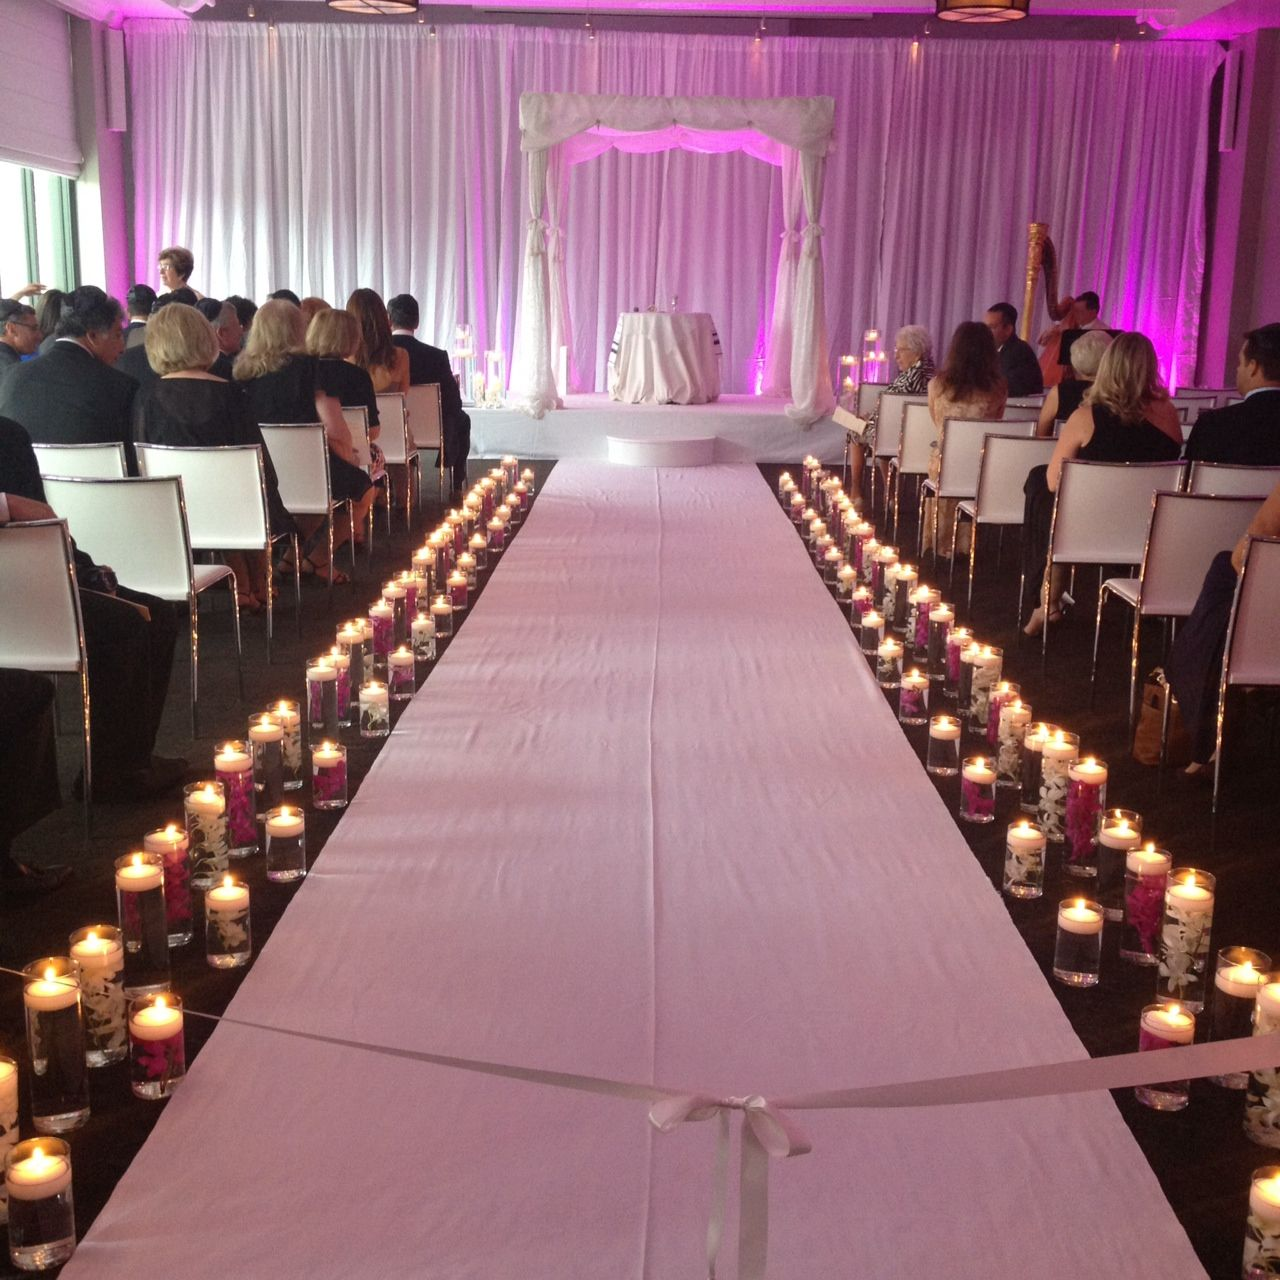 wedding aisle decorations Wedding Ceremony Decorations 29th in ceremony Details